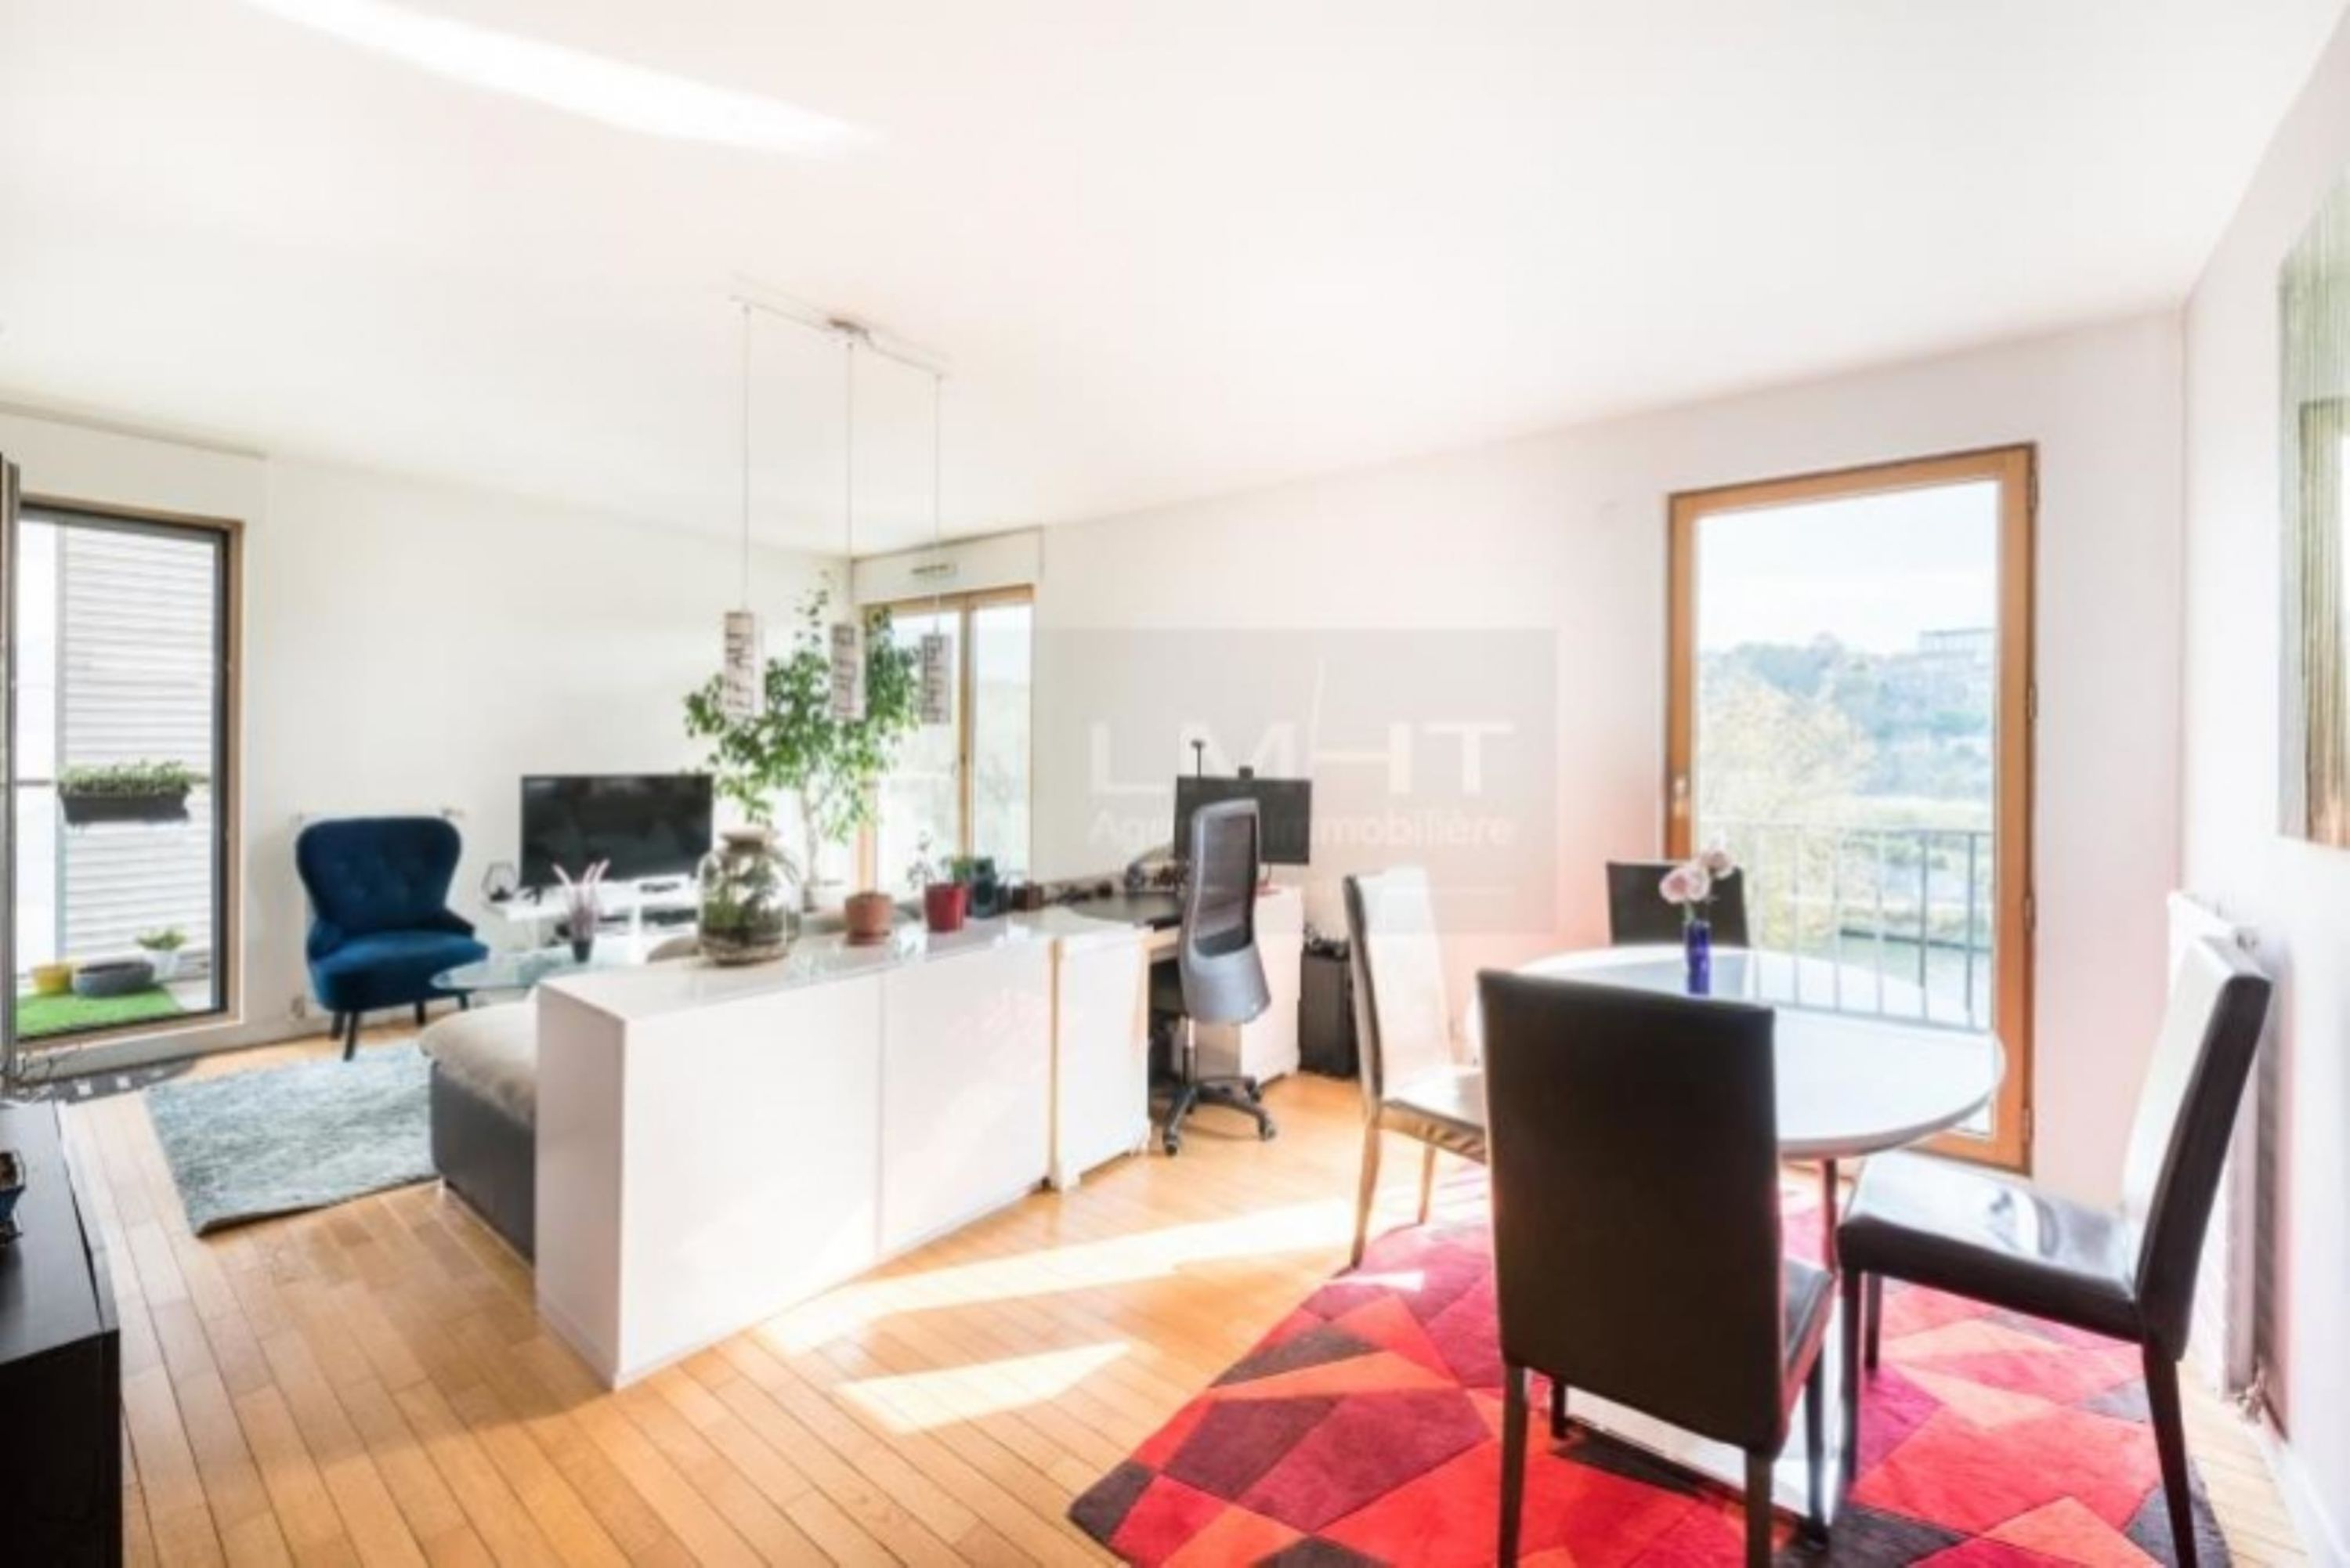 agence immobilière sevres 92 le chesnay 78 achat vente location appartement maison immobilier LMHT ANF PMIFQISS